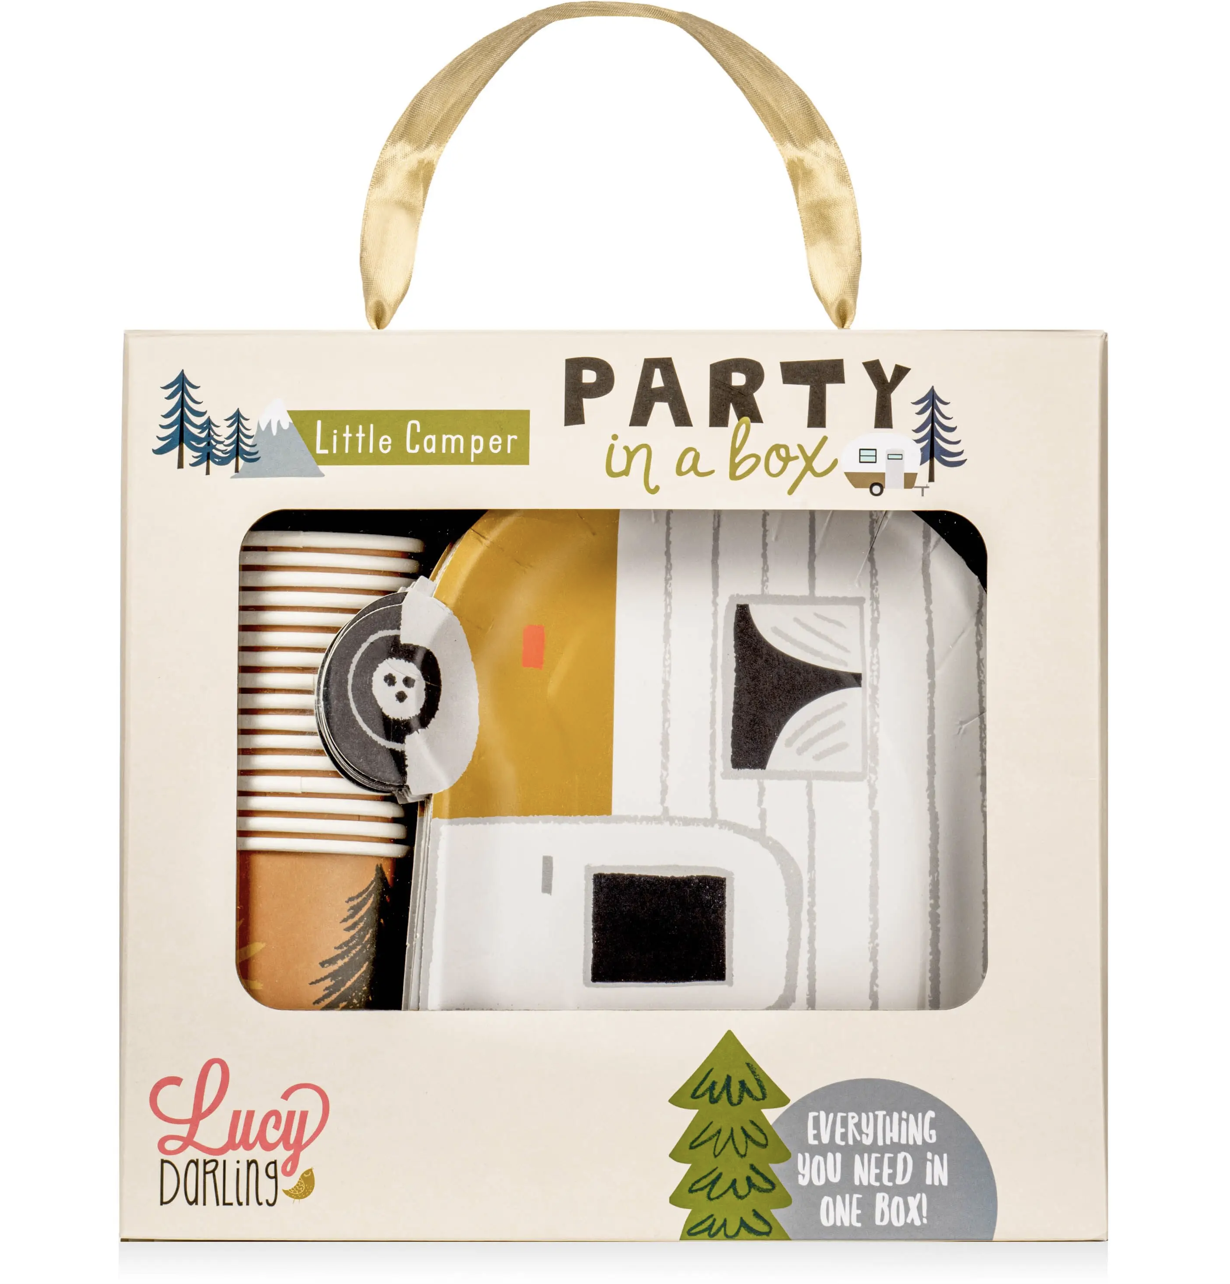 Little Camper: Party in a Box